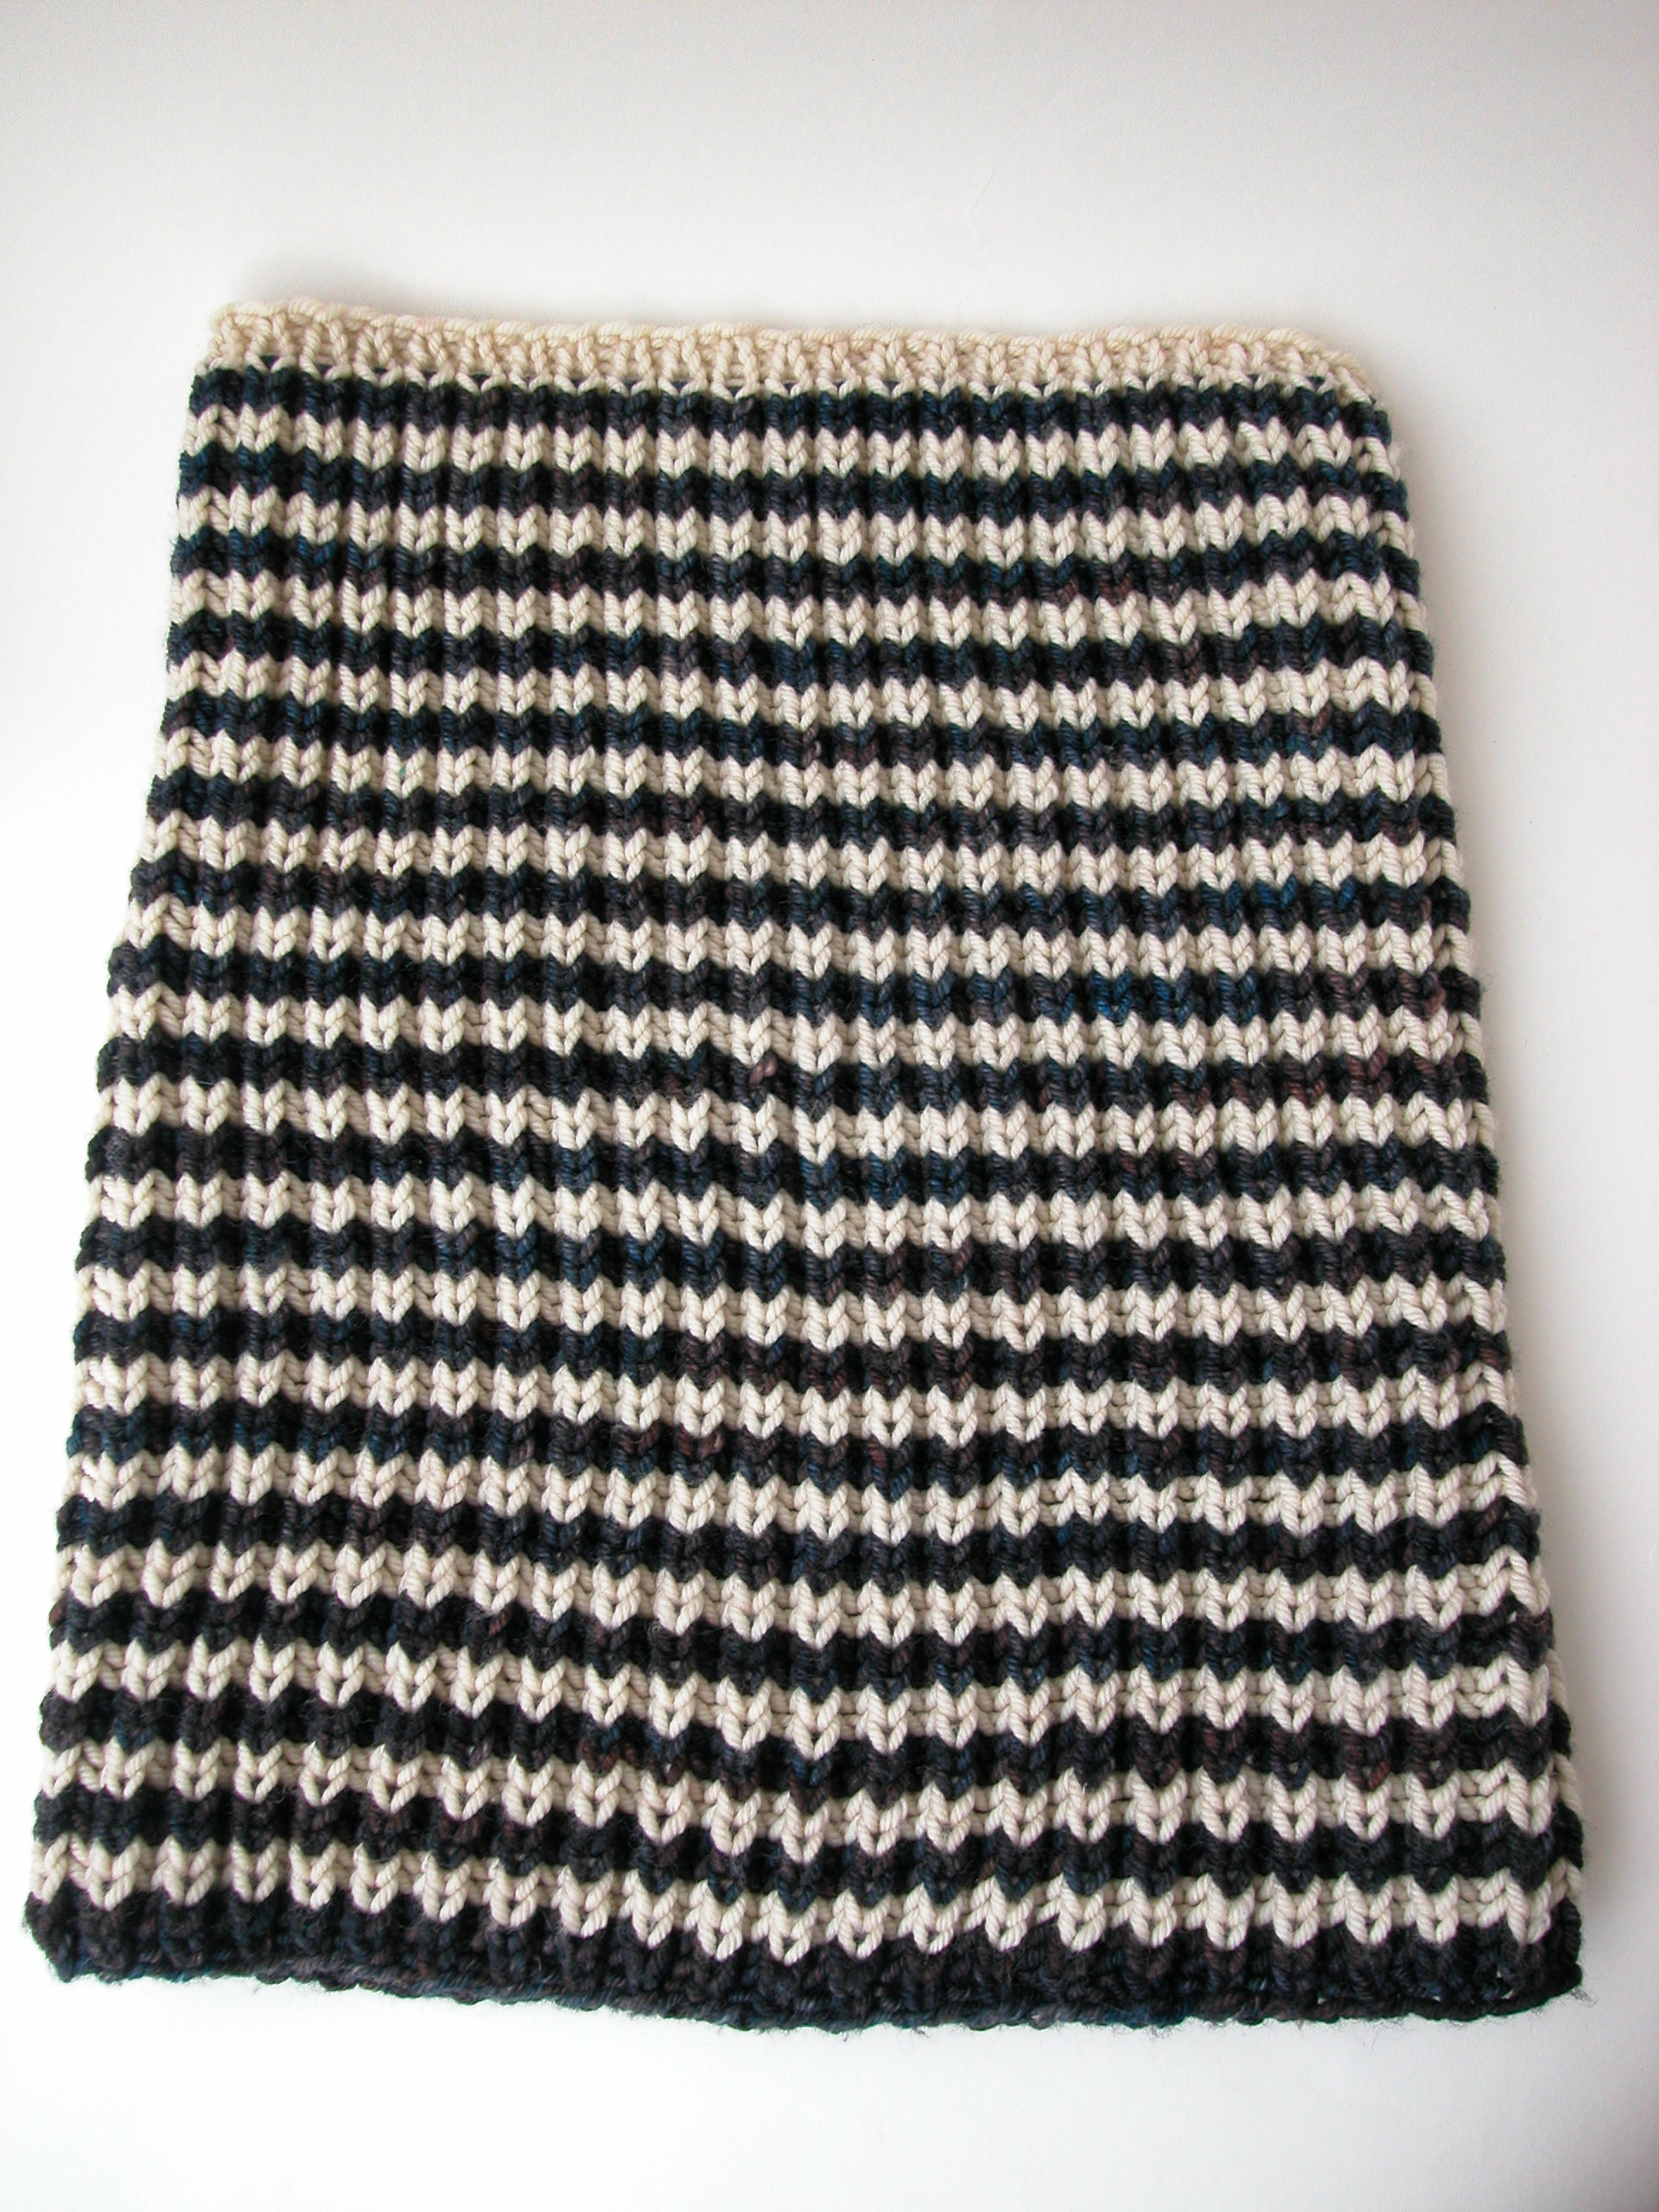 Knit cowl patterns the knit cafe the two colour striping is particularly striking in this design each side of the cowl has a slightly different look but both are equally appealing bankloansurffo Choice Image